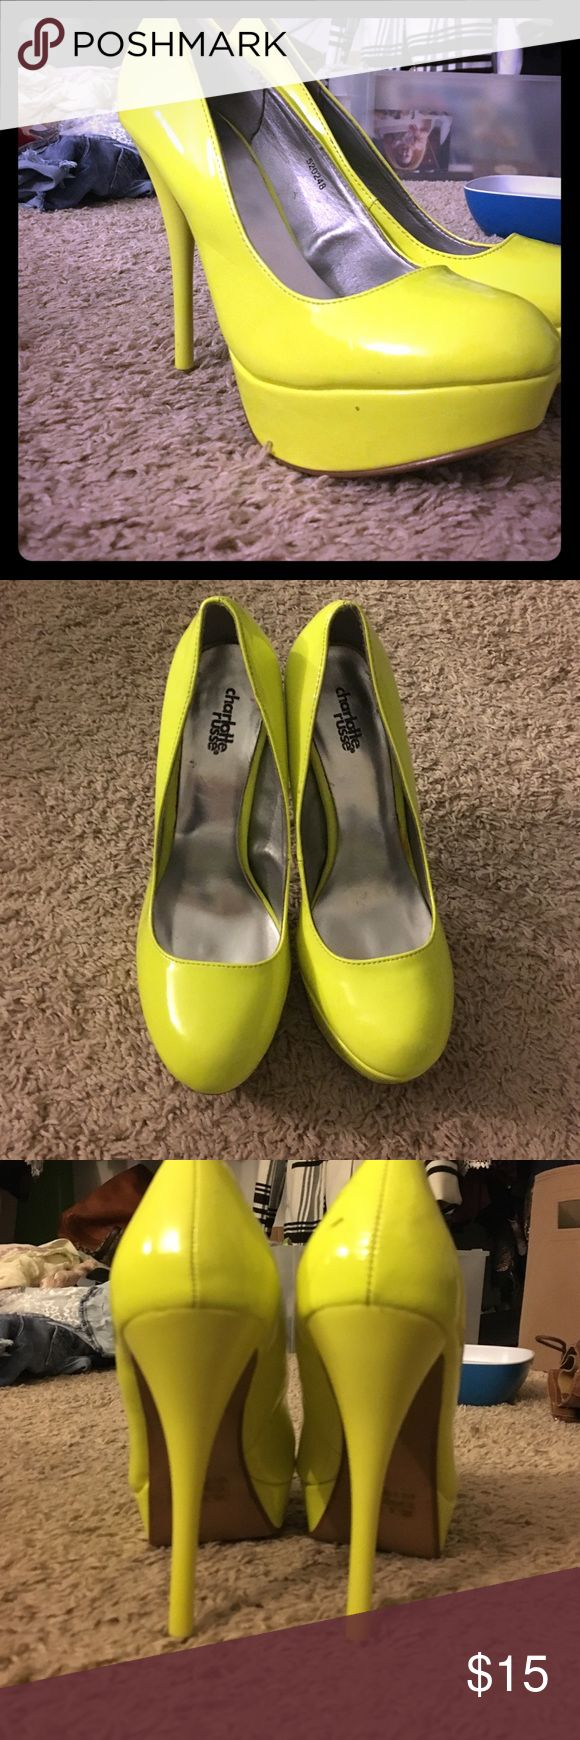 Yellow High heels Bright yellow high heels. God bless your soul if you are good at walking in heels. I'm selling these because I look like a just birthed baby calf when I try walking in heels soooo... Charlotte Russe Shoes Heels